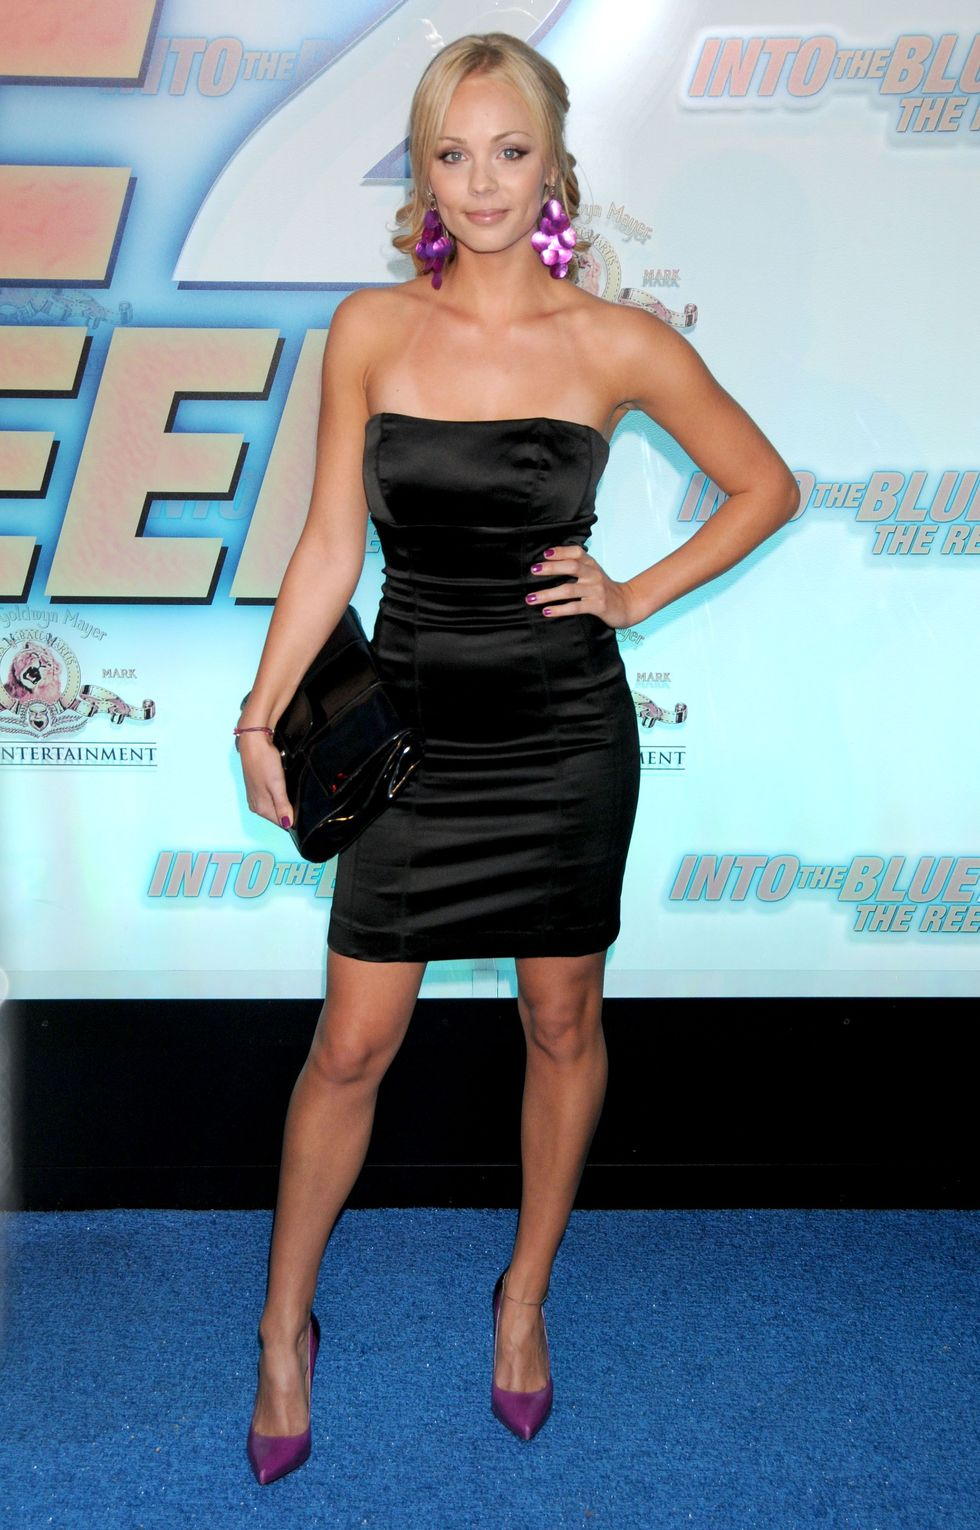 laura-vandervoort-into-the-blue-2-the-reef-premiere-in-beverly-hills-12